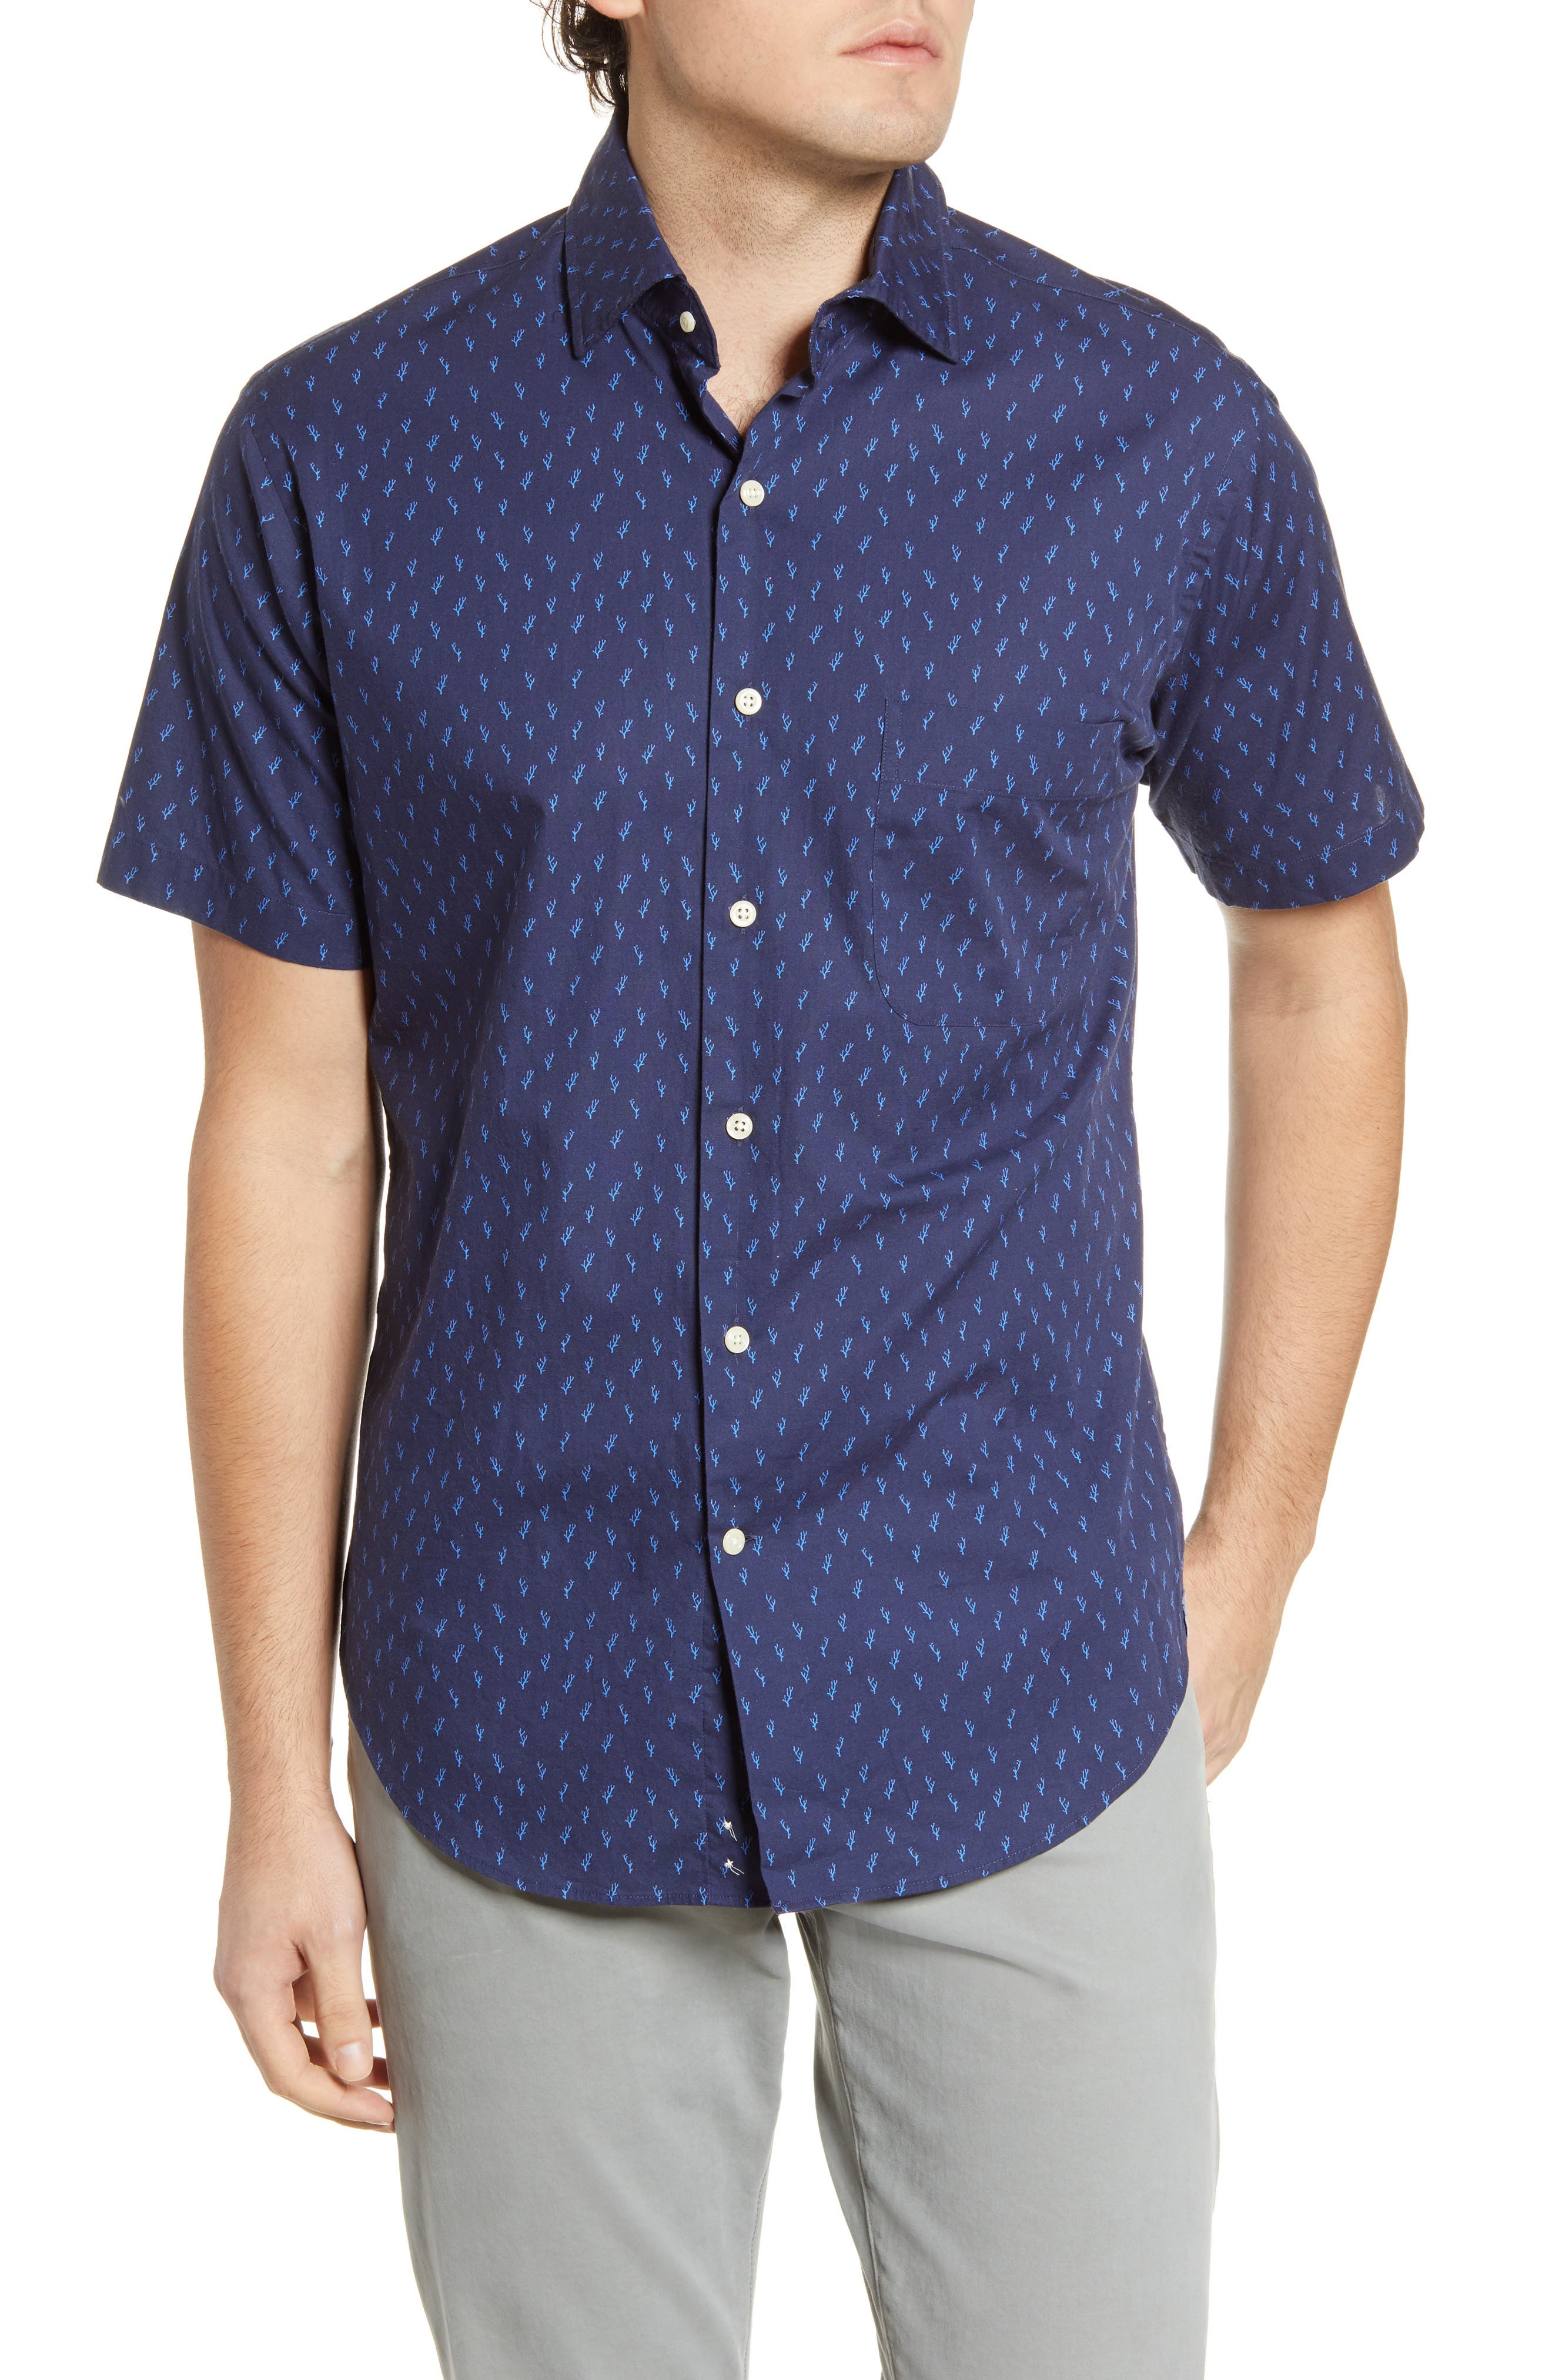 An aquatic pattern makes a splash on a short-sleeve sport shirt in a classic, comfortable fit. Style Name: Peter Millar Raise The Reef Regular Fit Short Sleeve Button-Up Shirt. Style Number: 6001244. Available in stores.